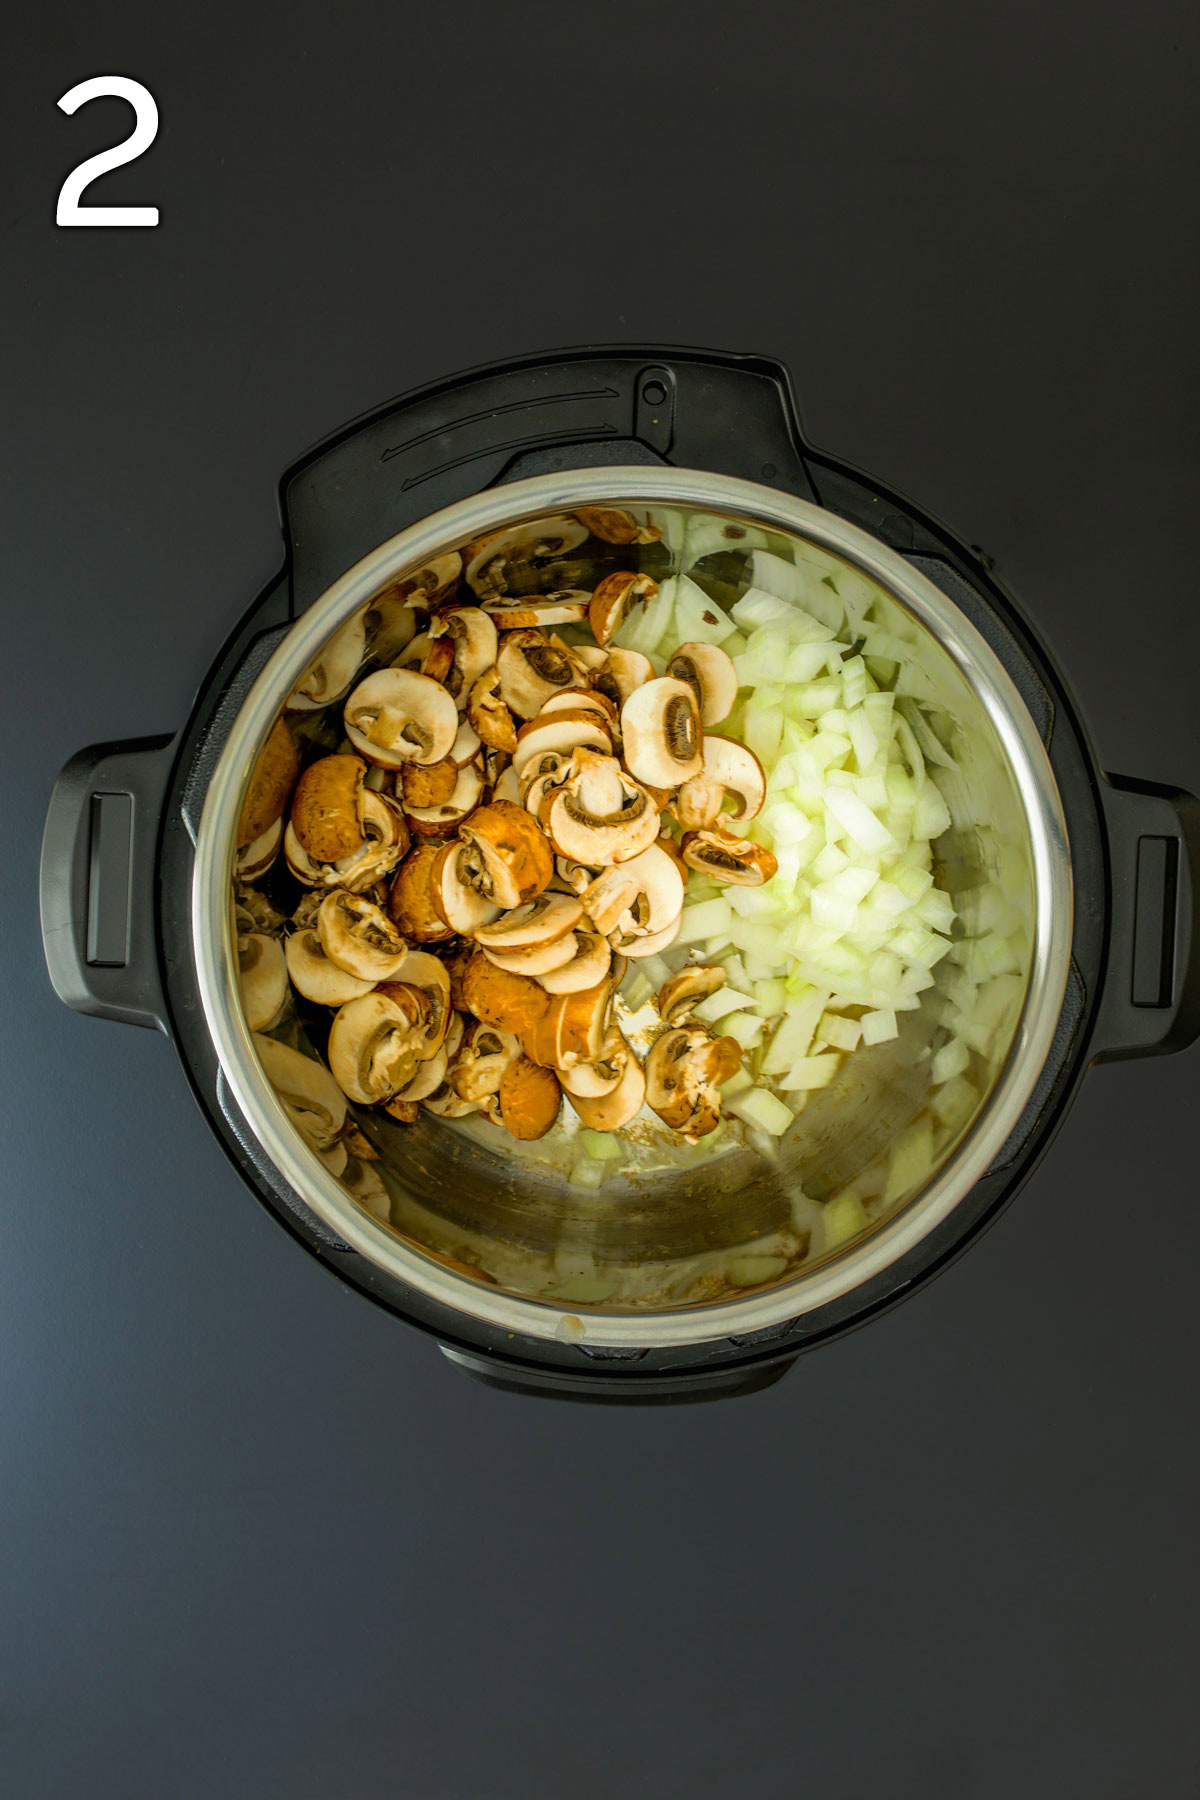 sauteing mushrooms and onions in drippings in pot.